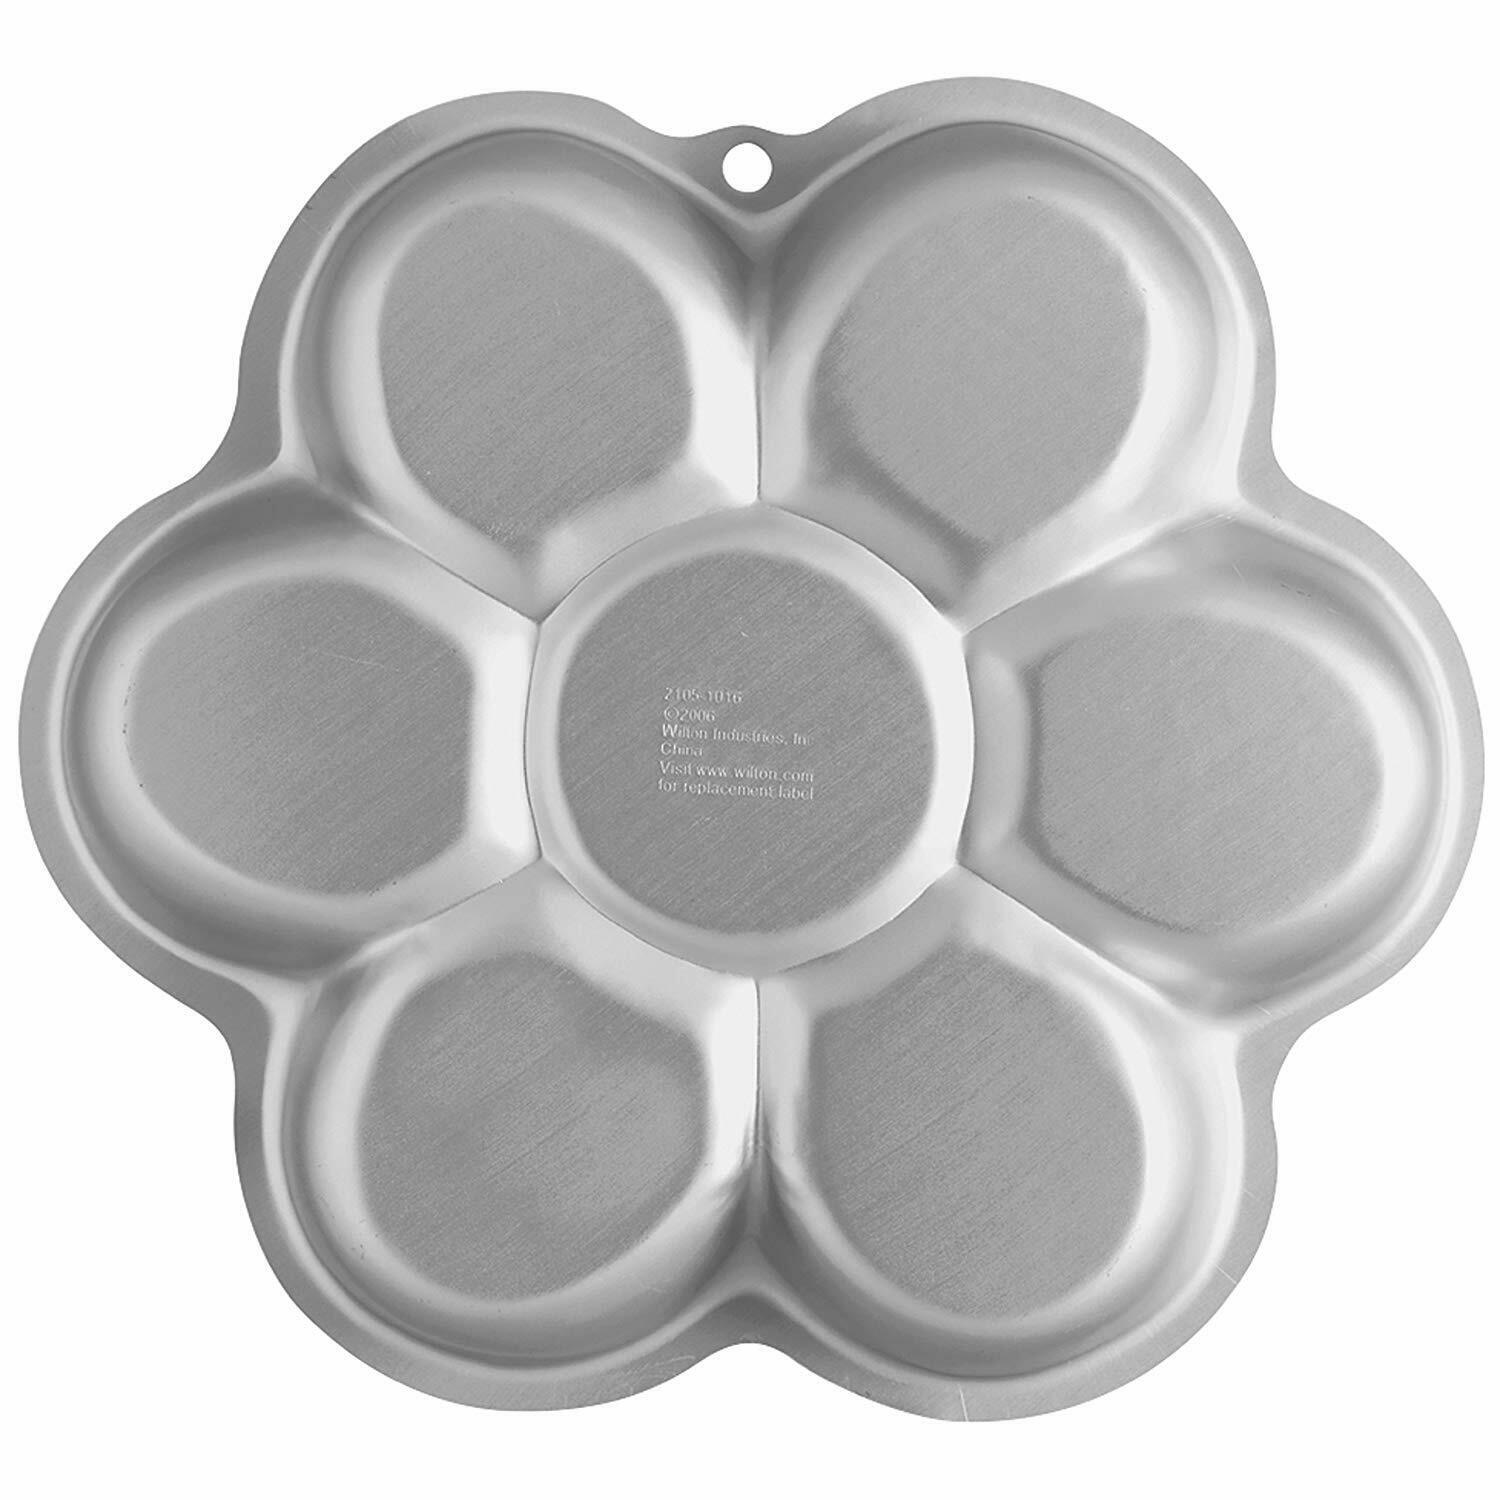 Primary image for Wilton Dancing Daisy Cake Pan (2105-1016)